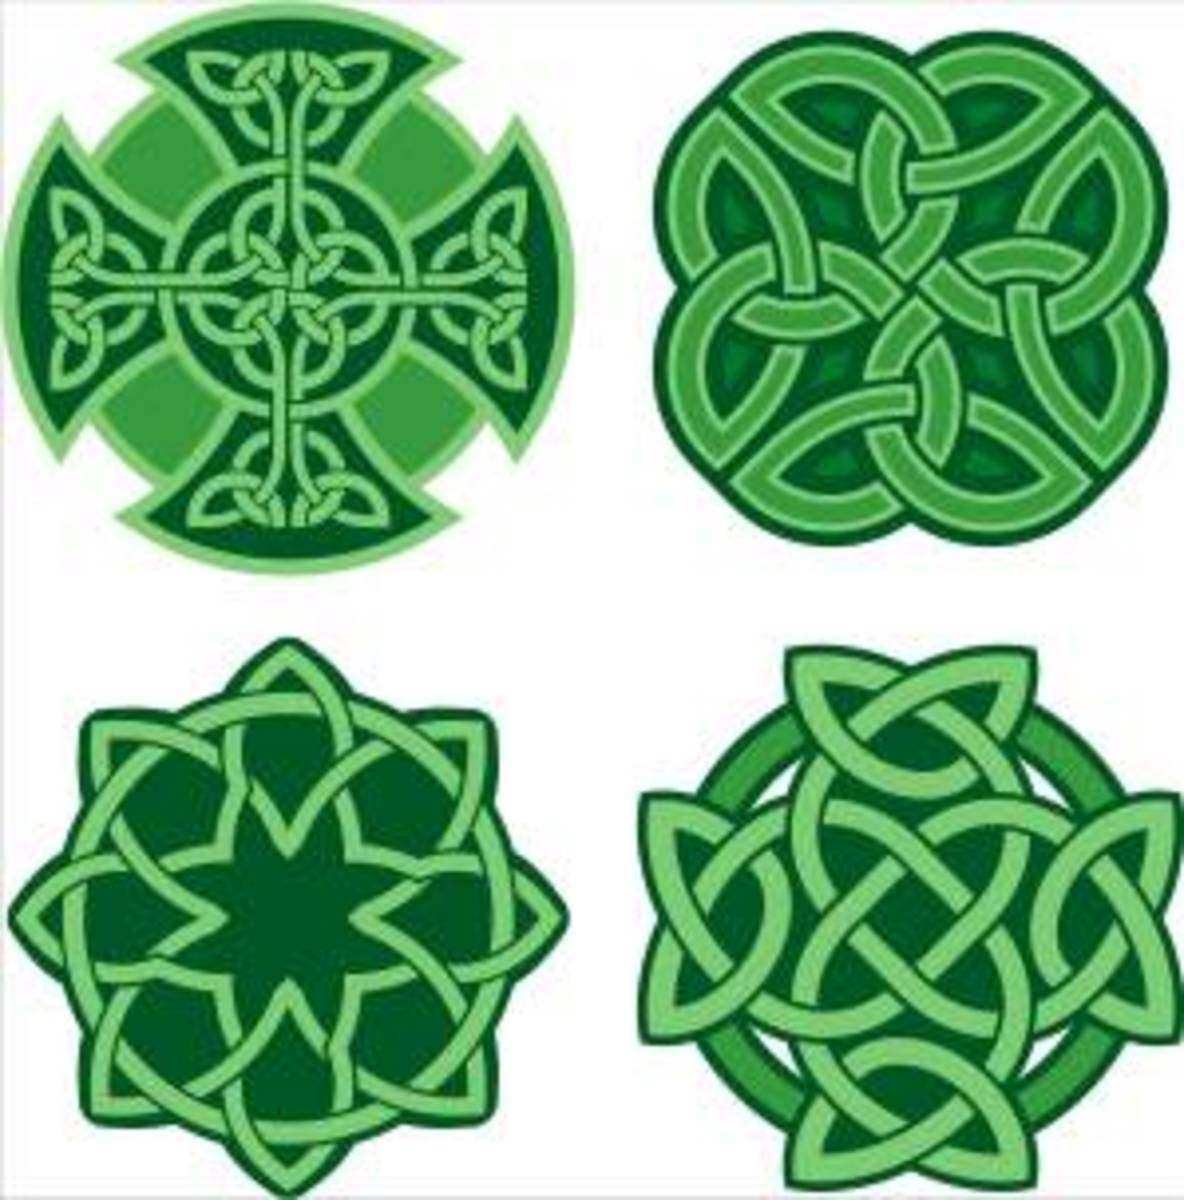 Celtic Gaelic knots - symbols of the Gaelic culture in Ireland.